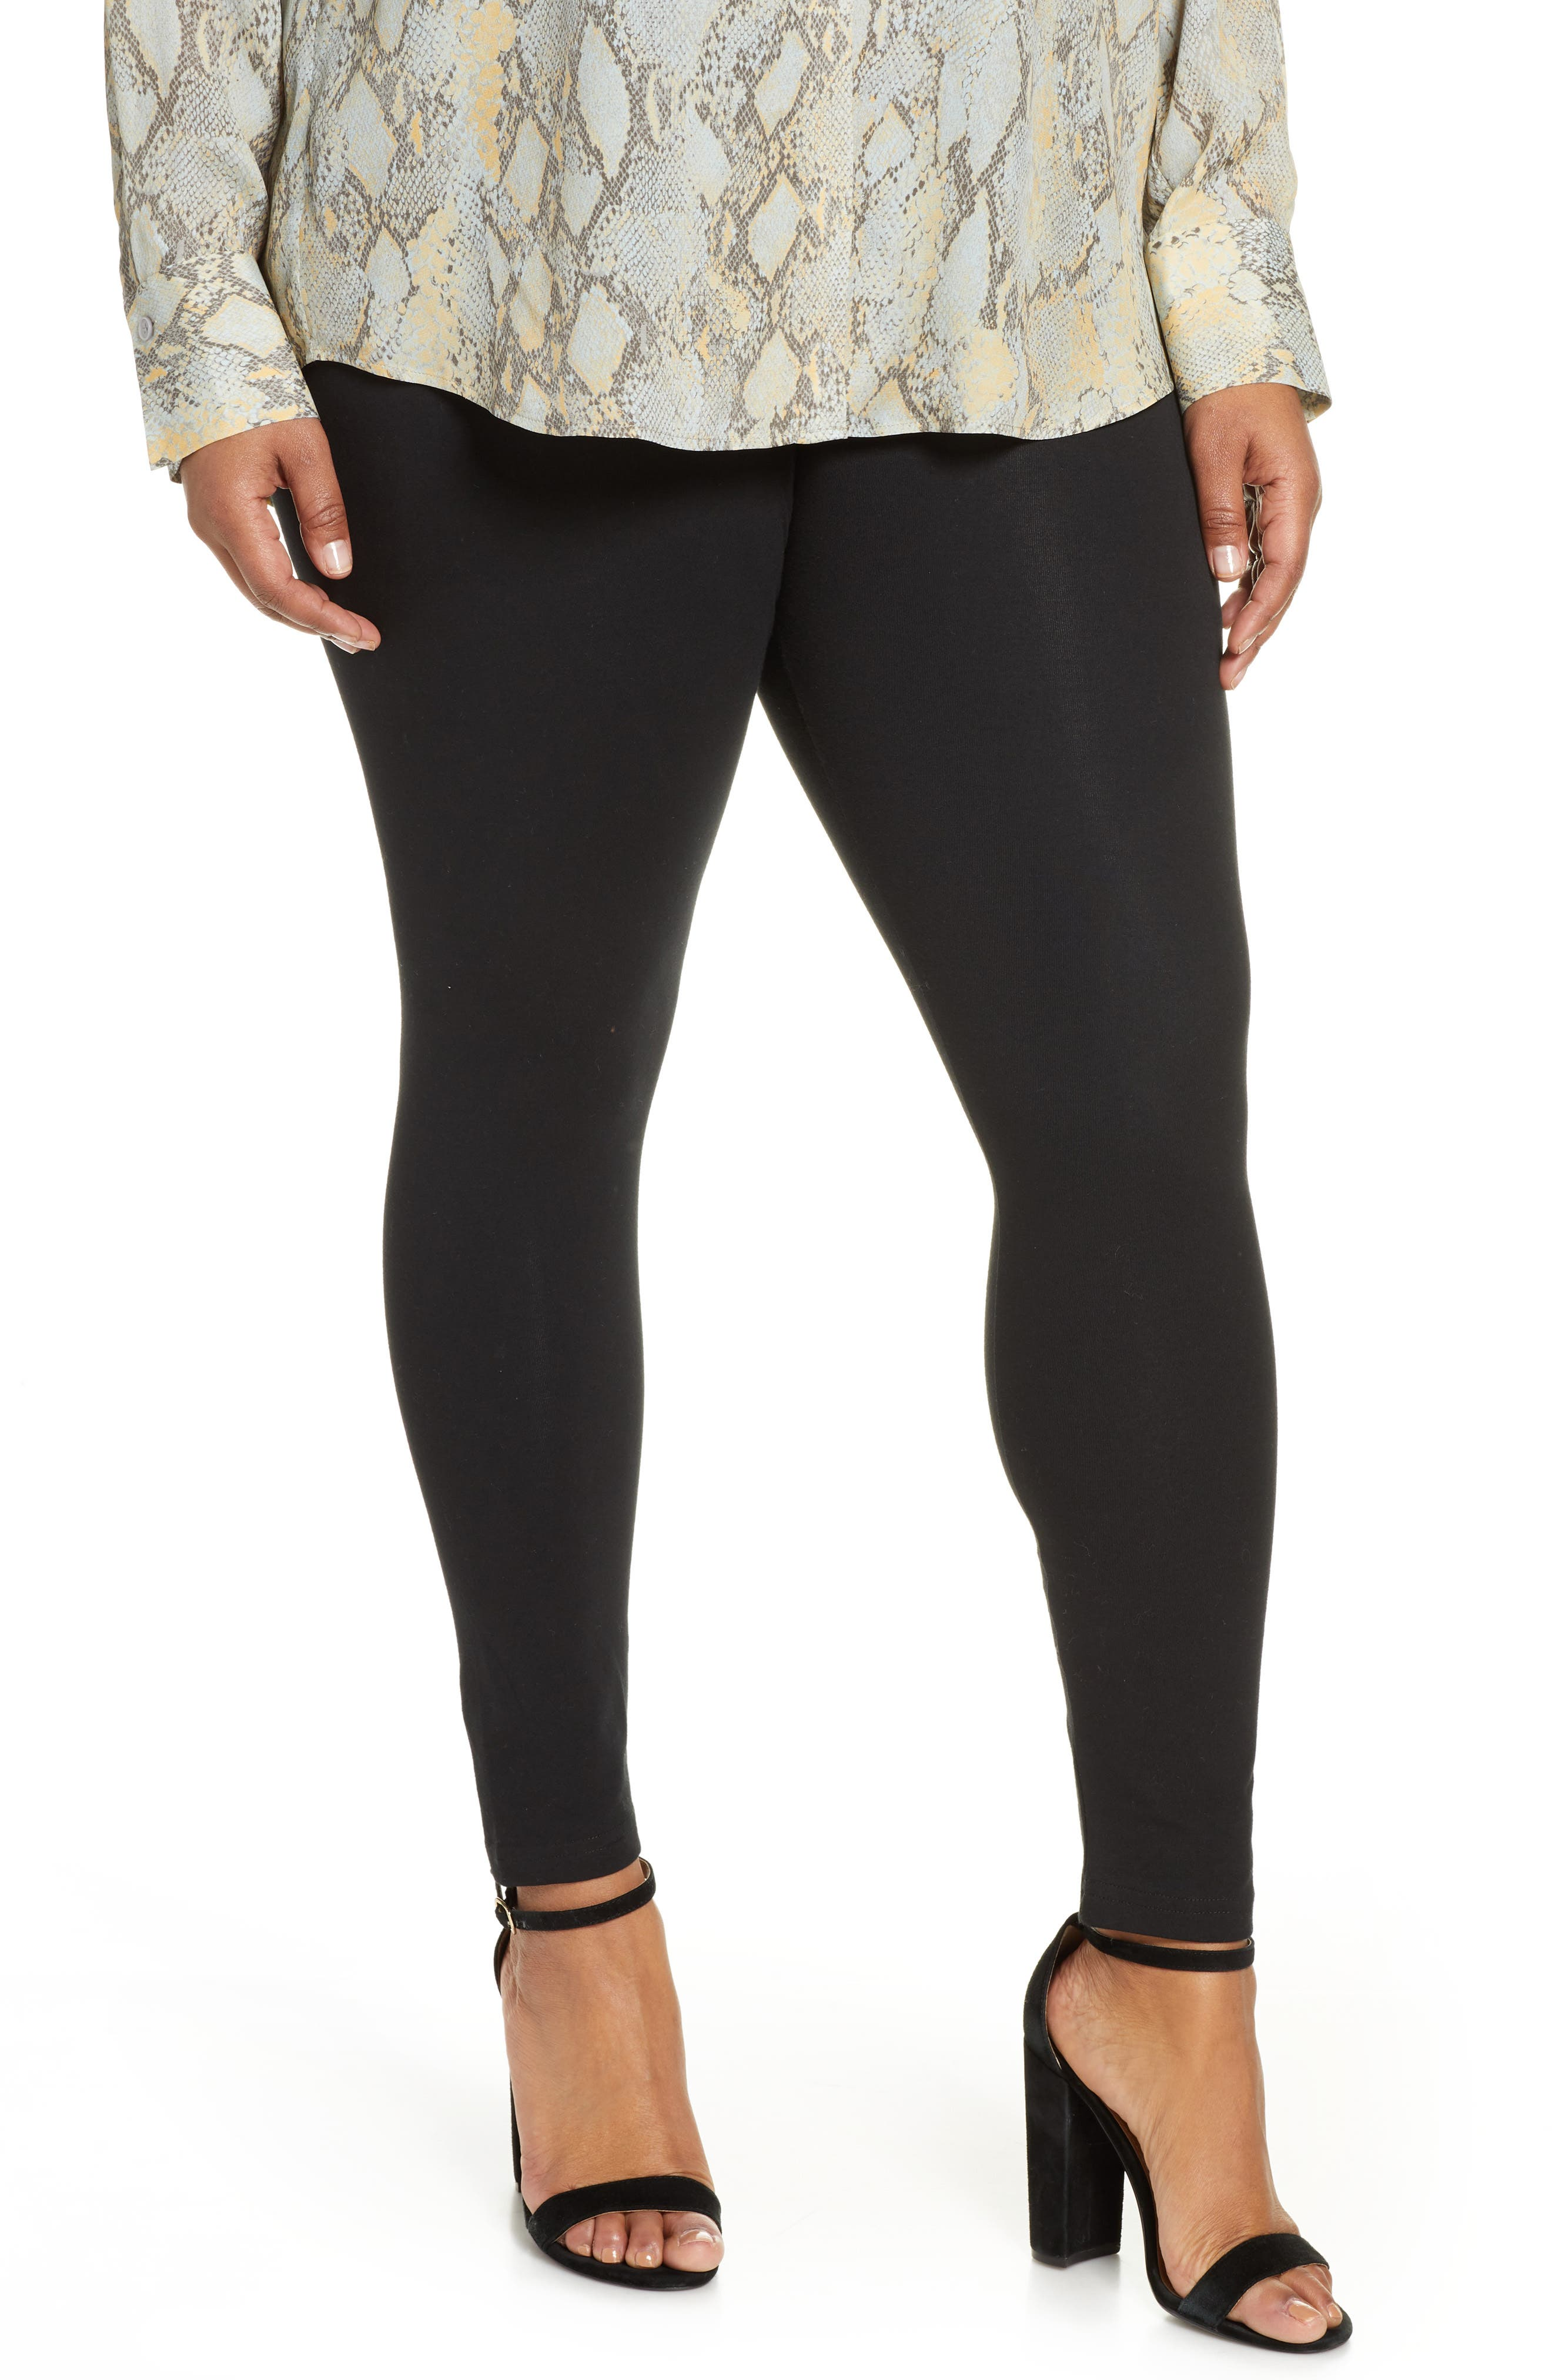 Plus Size Lysse Control Top Leggings